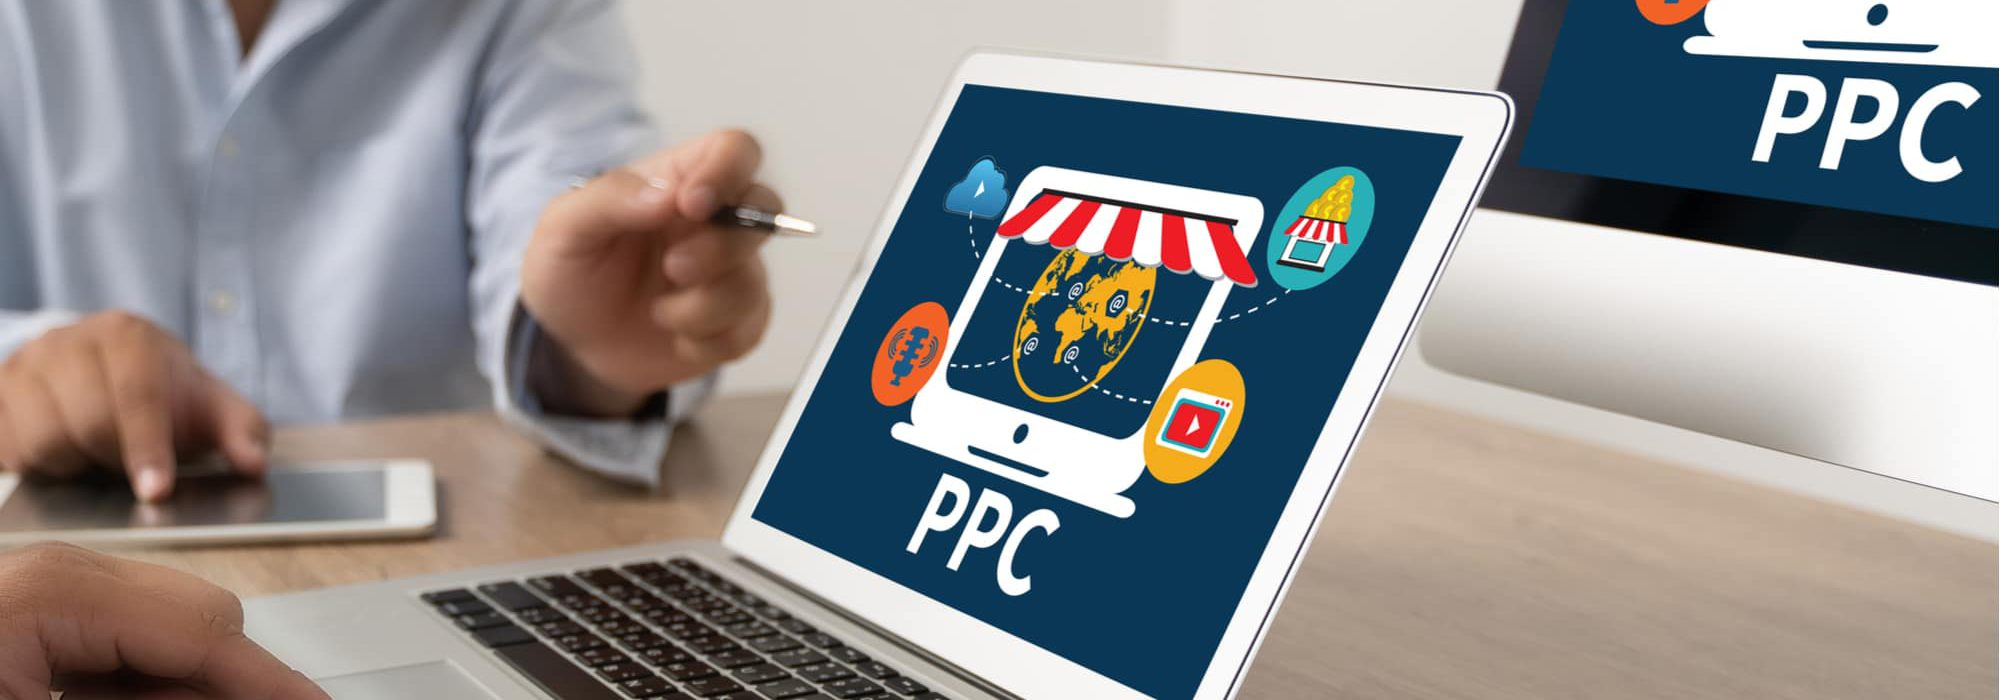 PPC for businesses